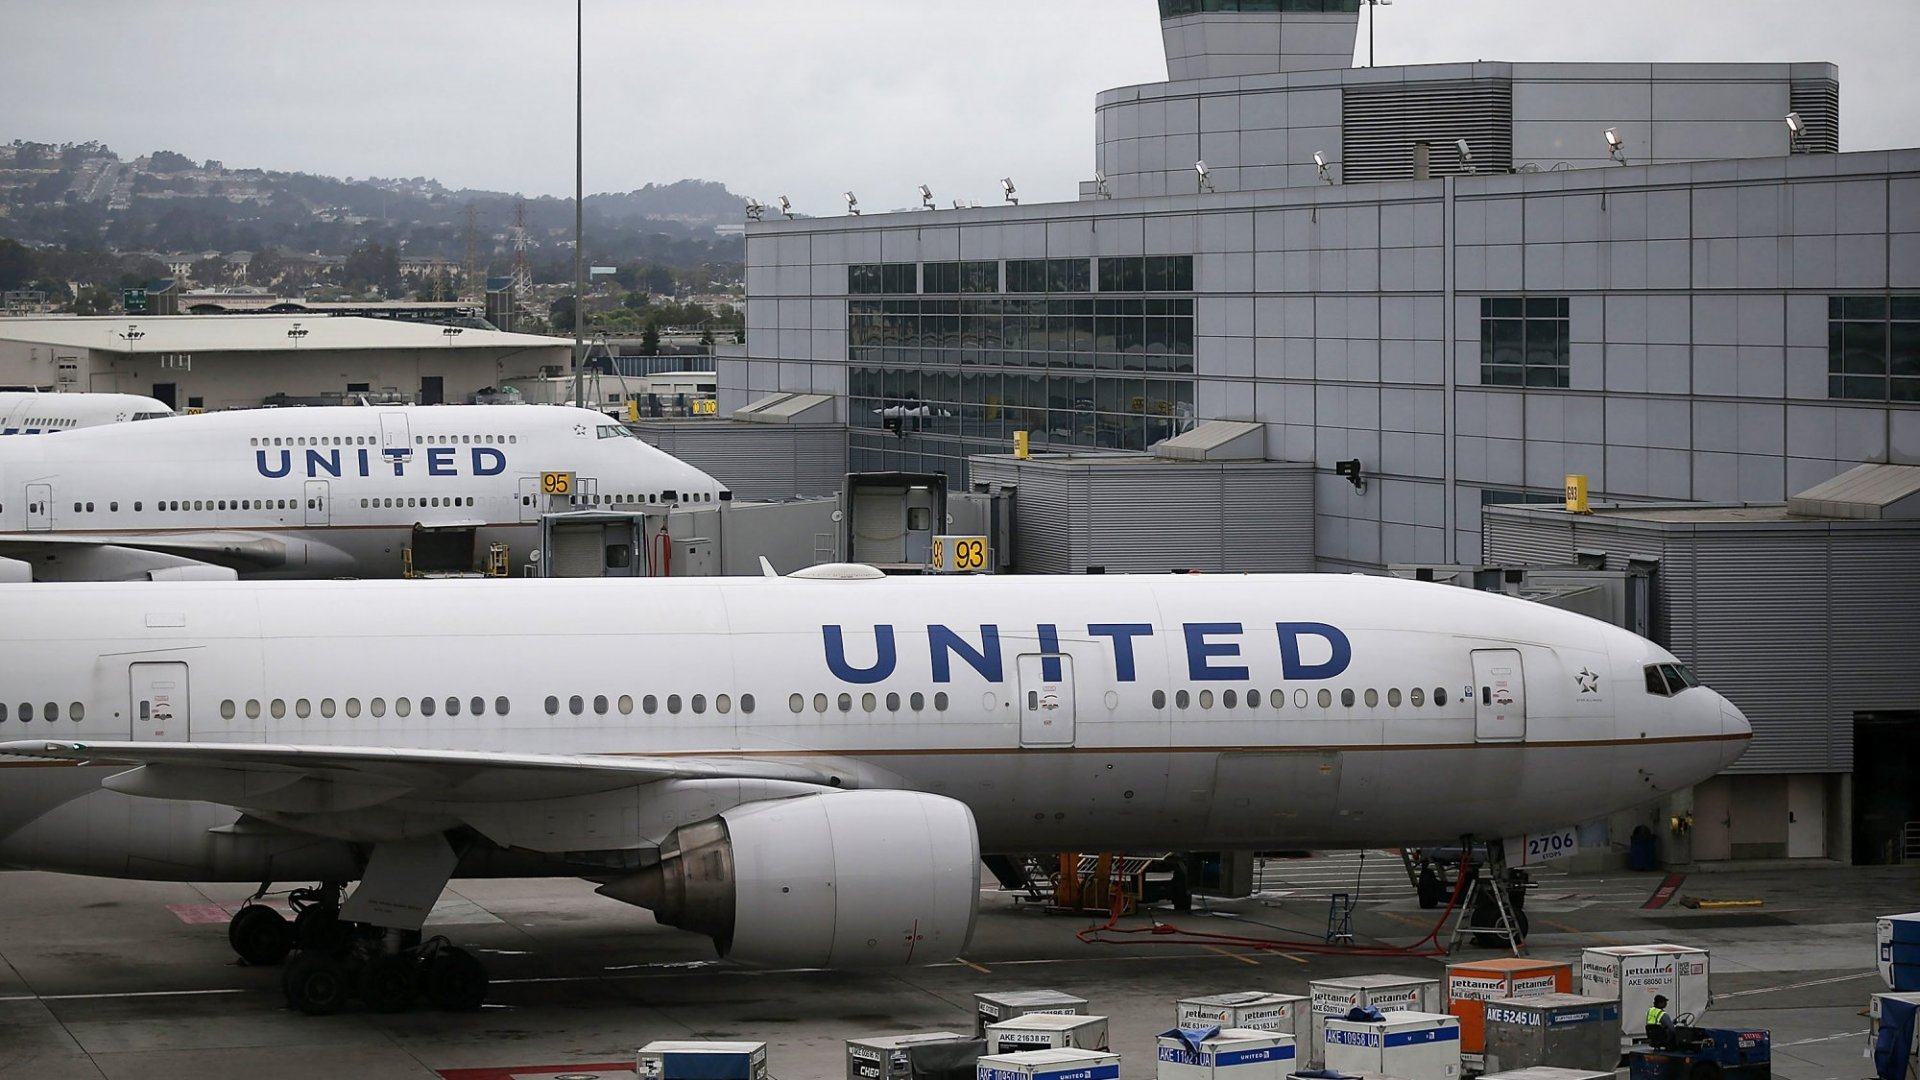 A United Airlines Pilot Was Arrested. The Reason Why Is Truly Shocking, But How He Got There Is Even Crazier